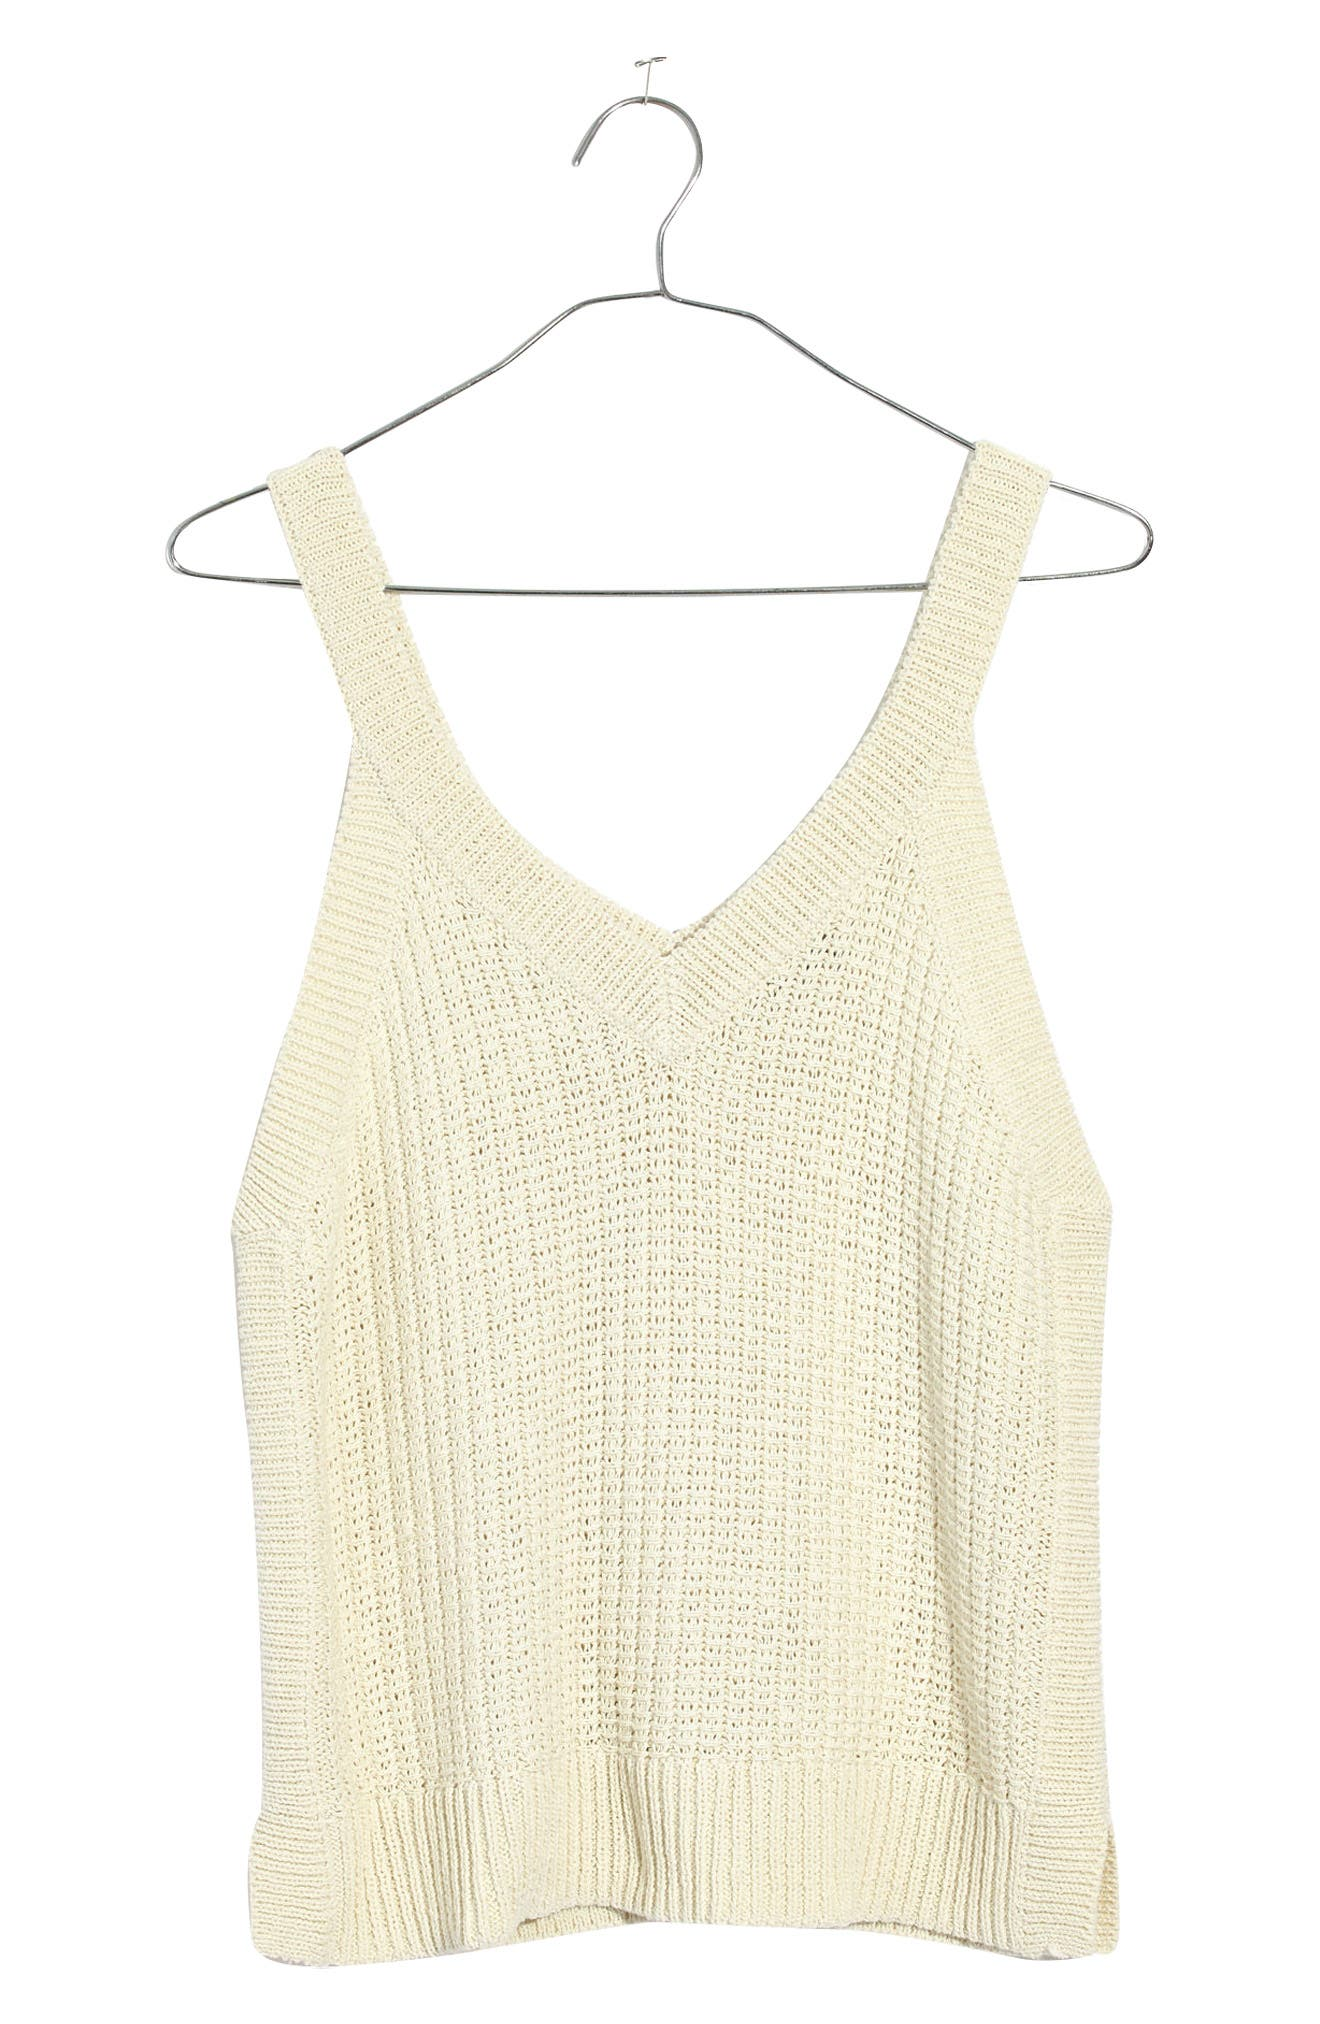 Stockton Sweater Tank,                             Alternate thumbnail 3, color,                             250